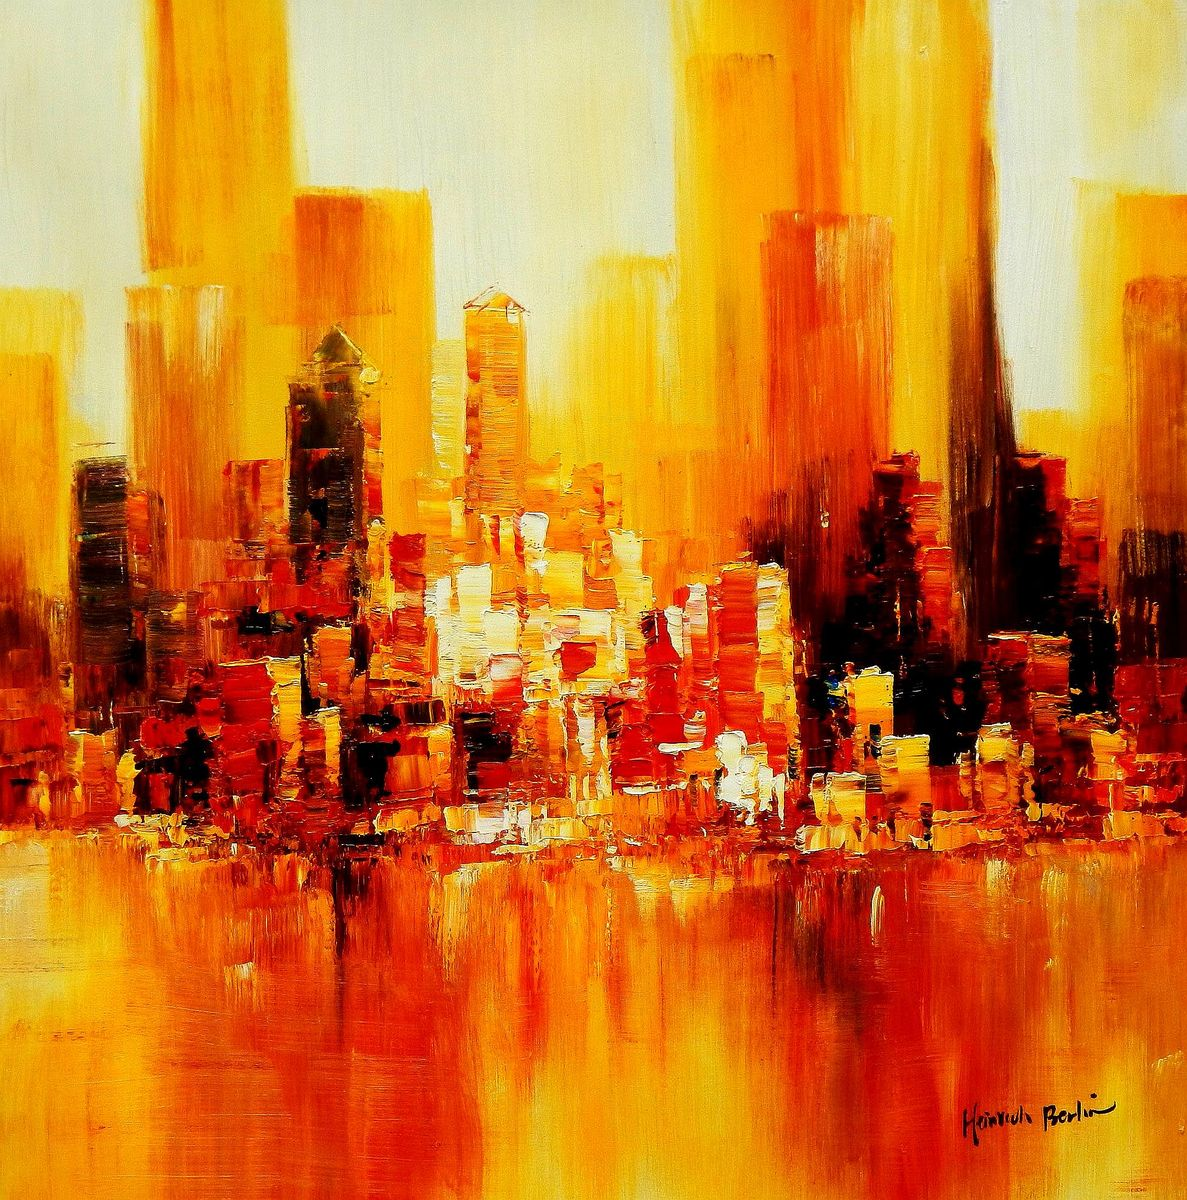 Abstrakt New York Manhattan Skyline im Herbst g94380 80x80cm abstraktes Ölbild